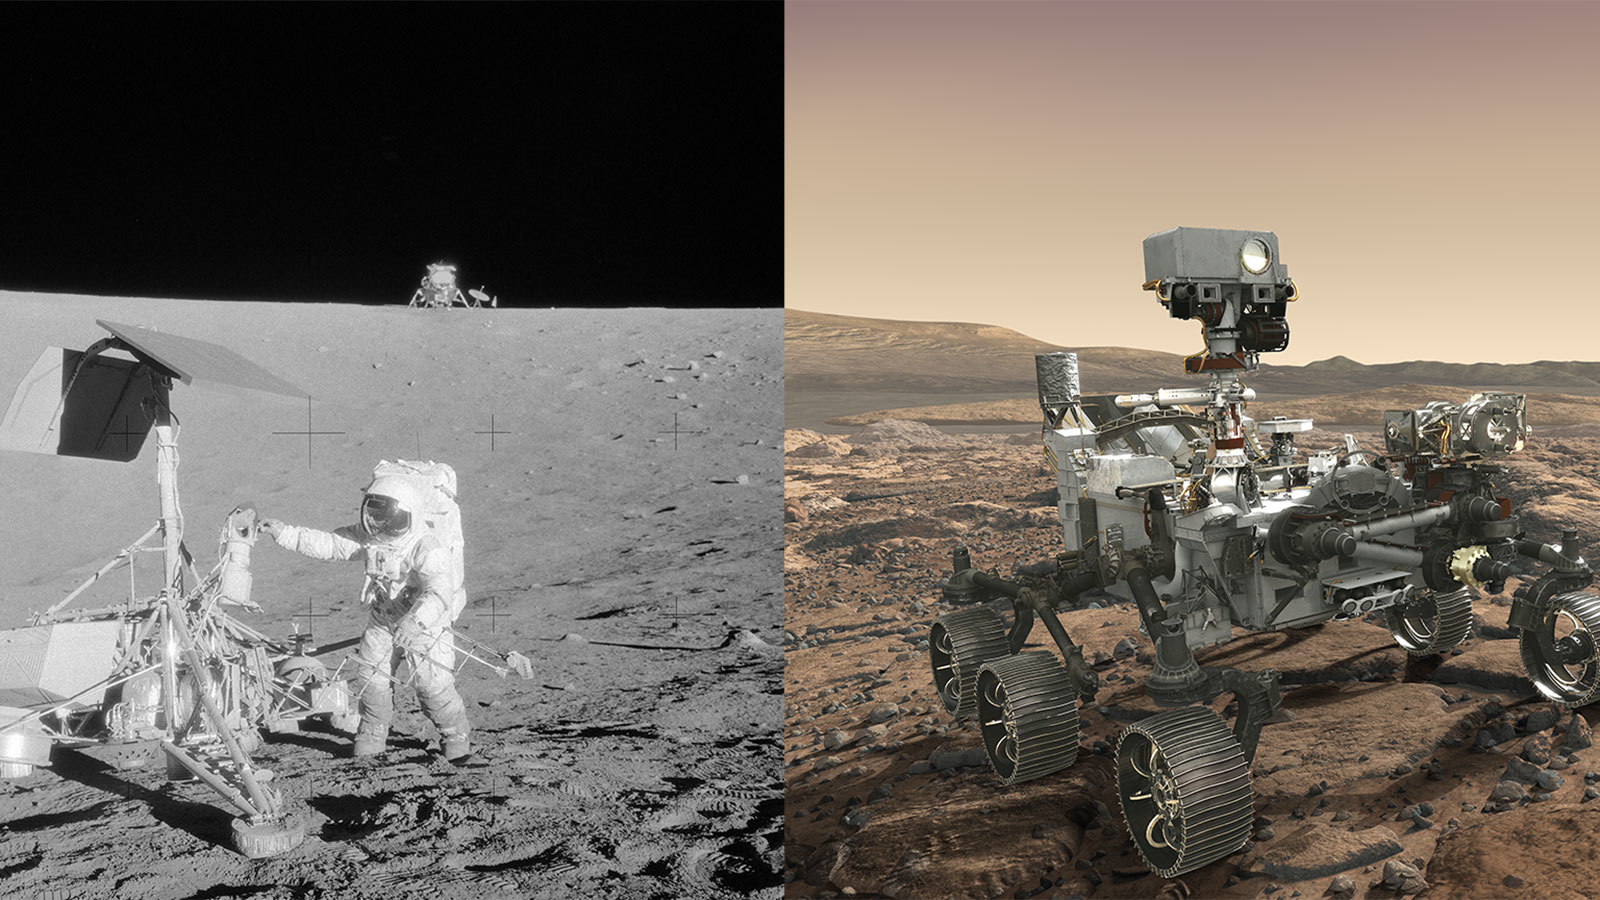 "(Left) Apollo 12 astronaut Charles ""Pete"" Conrad Jr. stands beside NASA's Surveyor 3 spacecraft; the lunar module Intrepid can be seen in the distance. Apollo 12 landed on the Moon's Ocean of Storms on Nov. 20, 1969. (Right) Mars 2020 rover, seen here in an artist's concept, will make history's most accurate landing on a planetary body when it lands at Mars' Jezero Crater on Feb. 18, 2021."